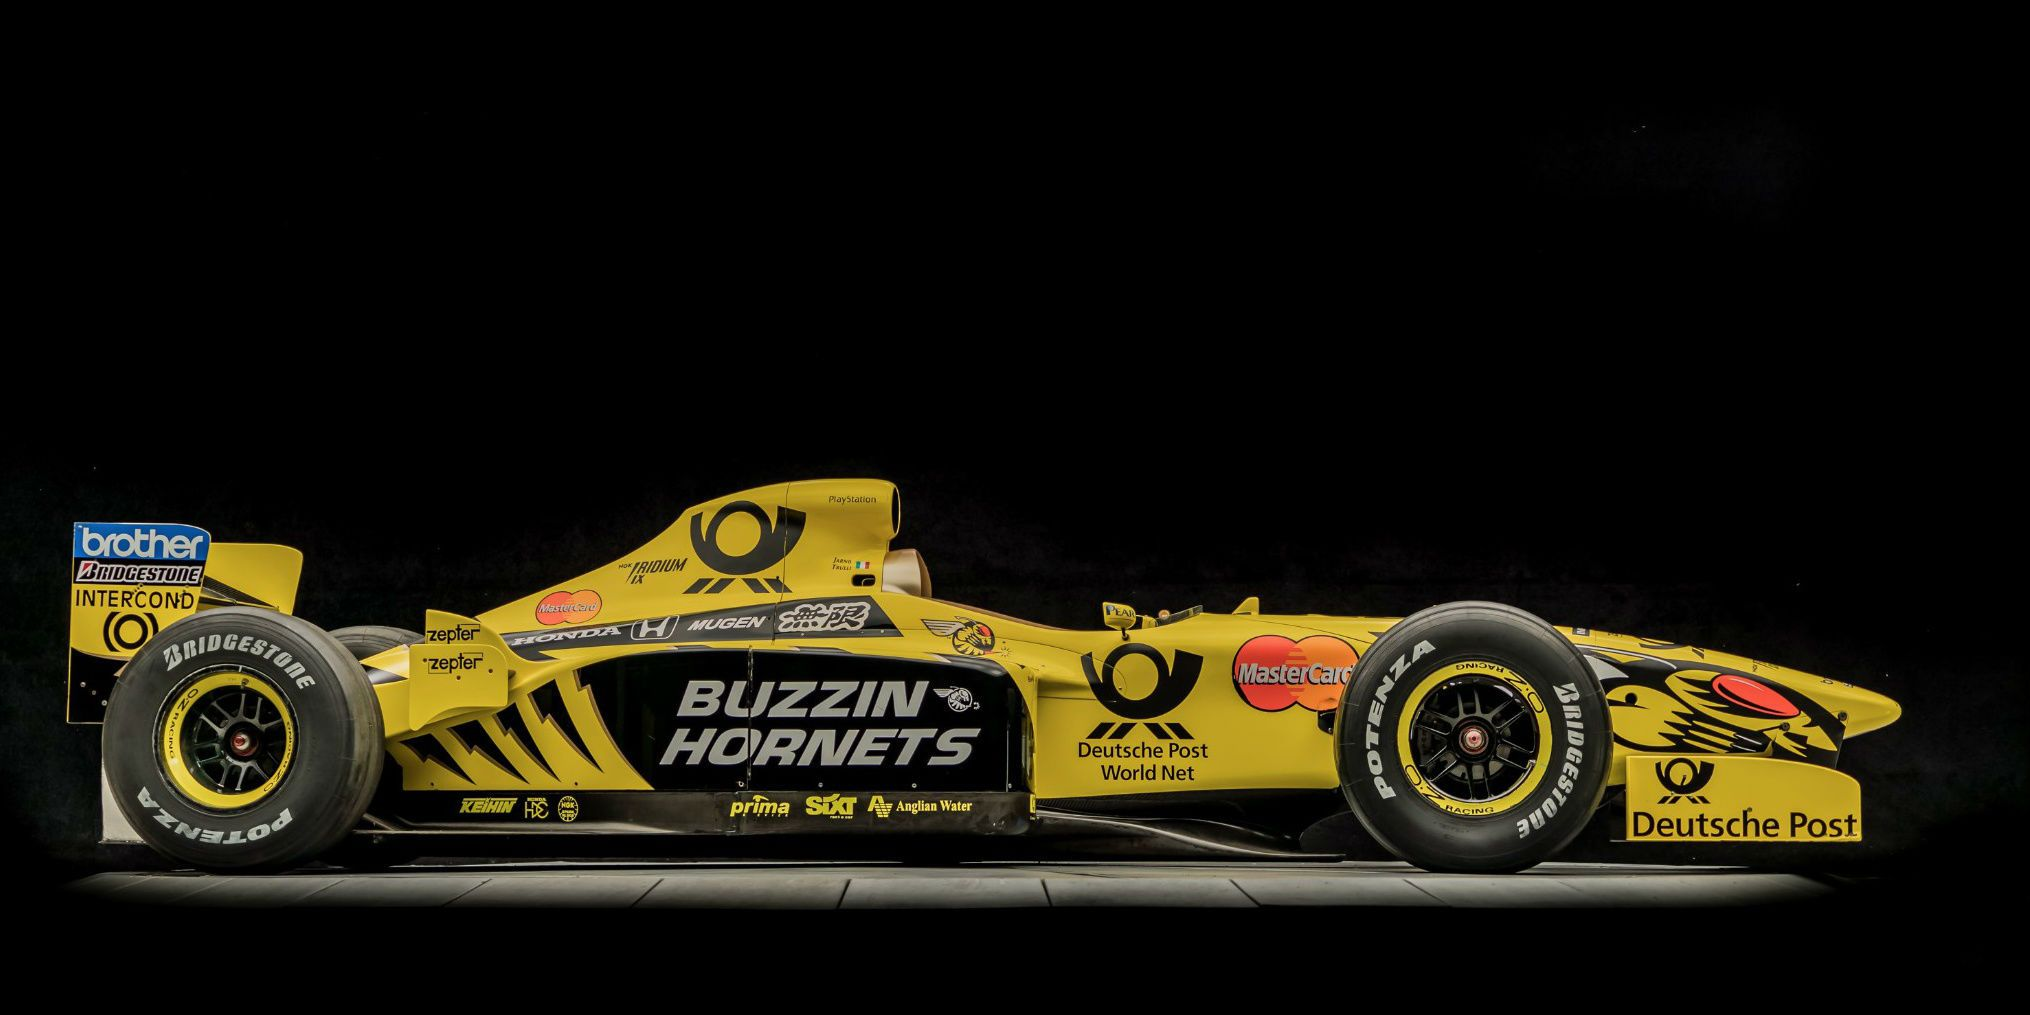 The Buzzin Est Of Hornets Jordan F1 S 1999 Race Car Is Up For Auction